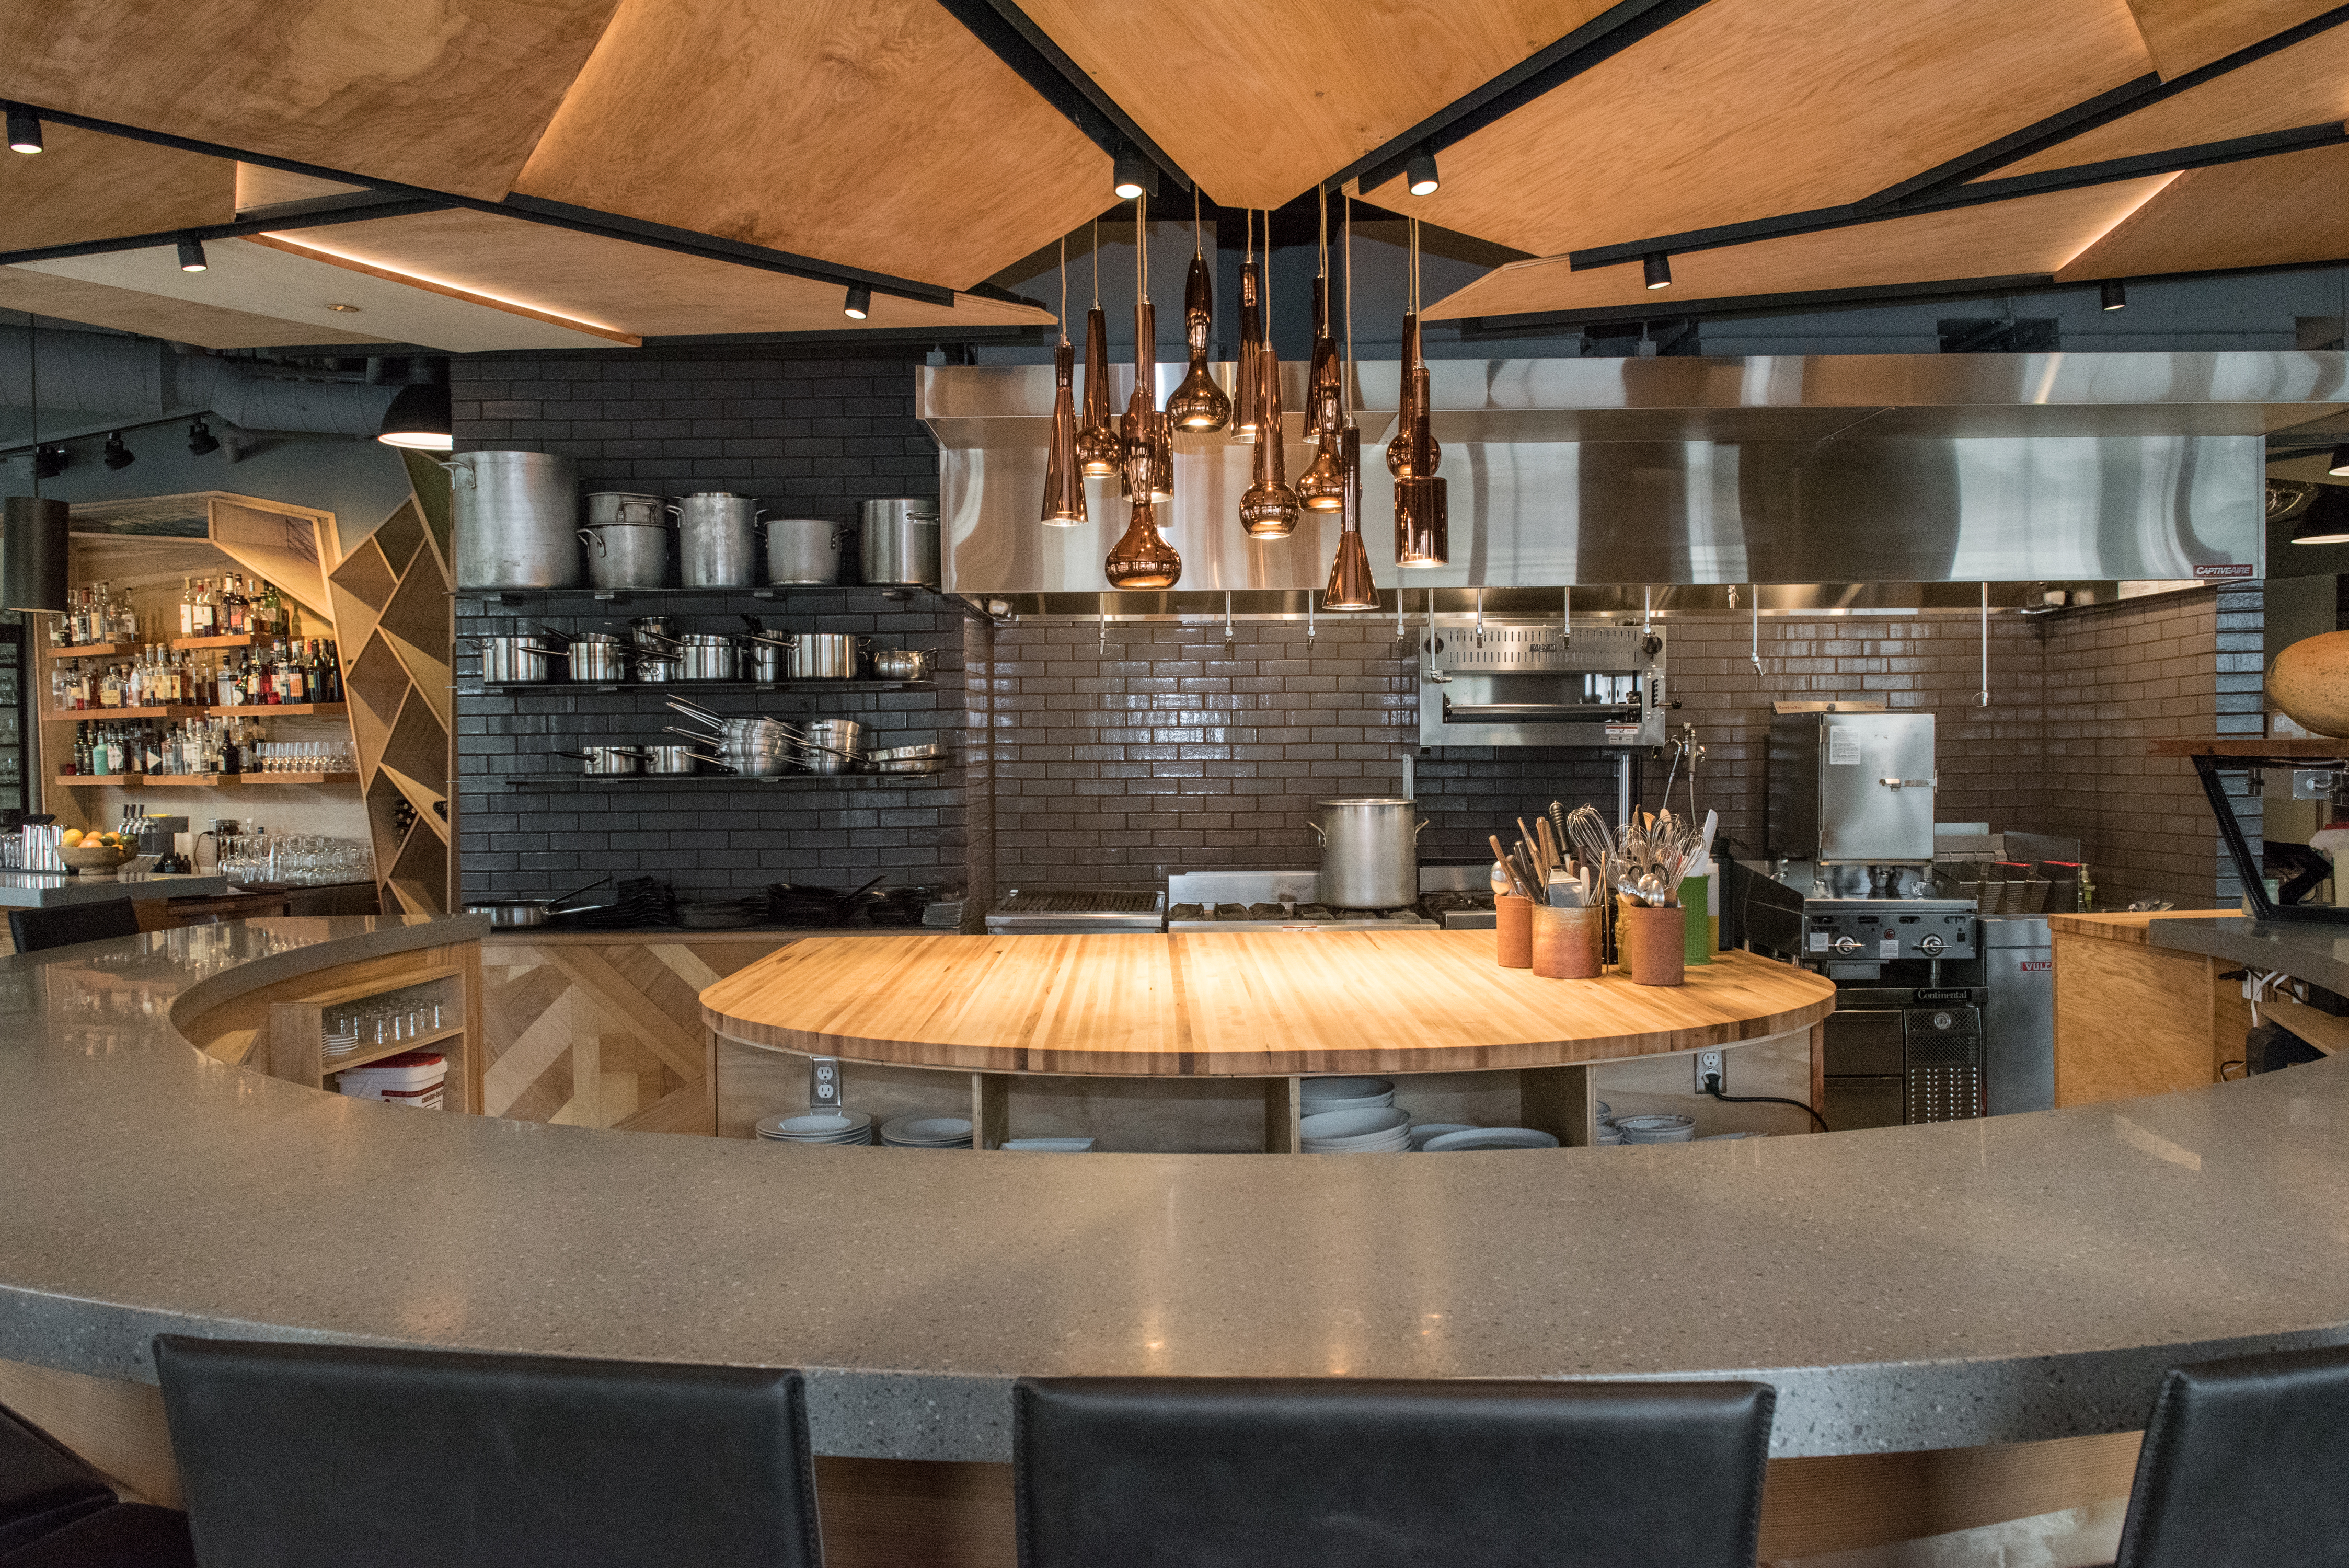 The central counter at Art of the Table, which overlooks the kitchen